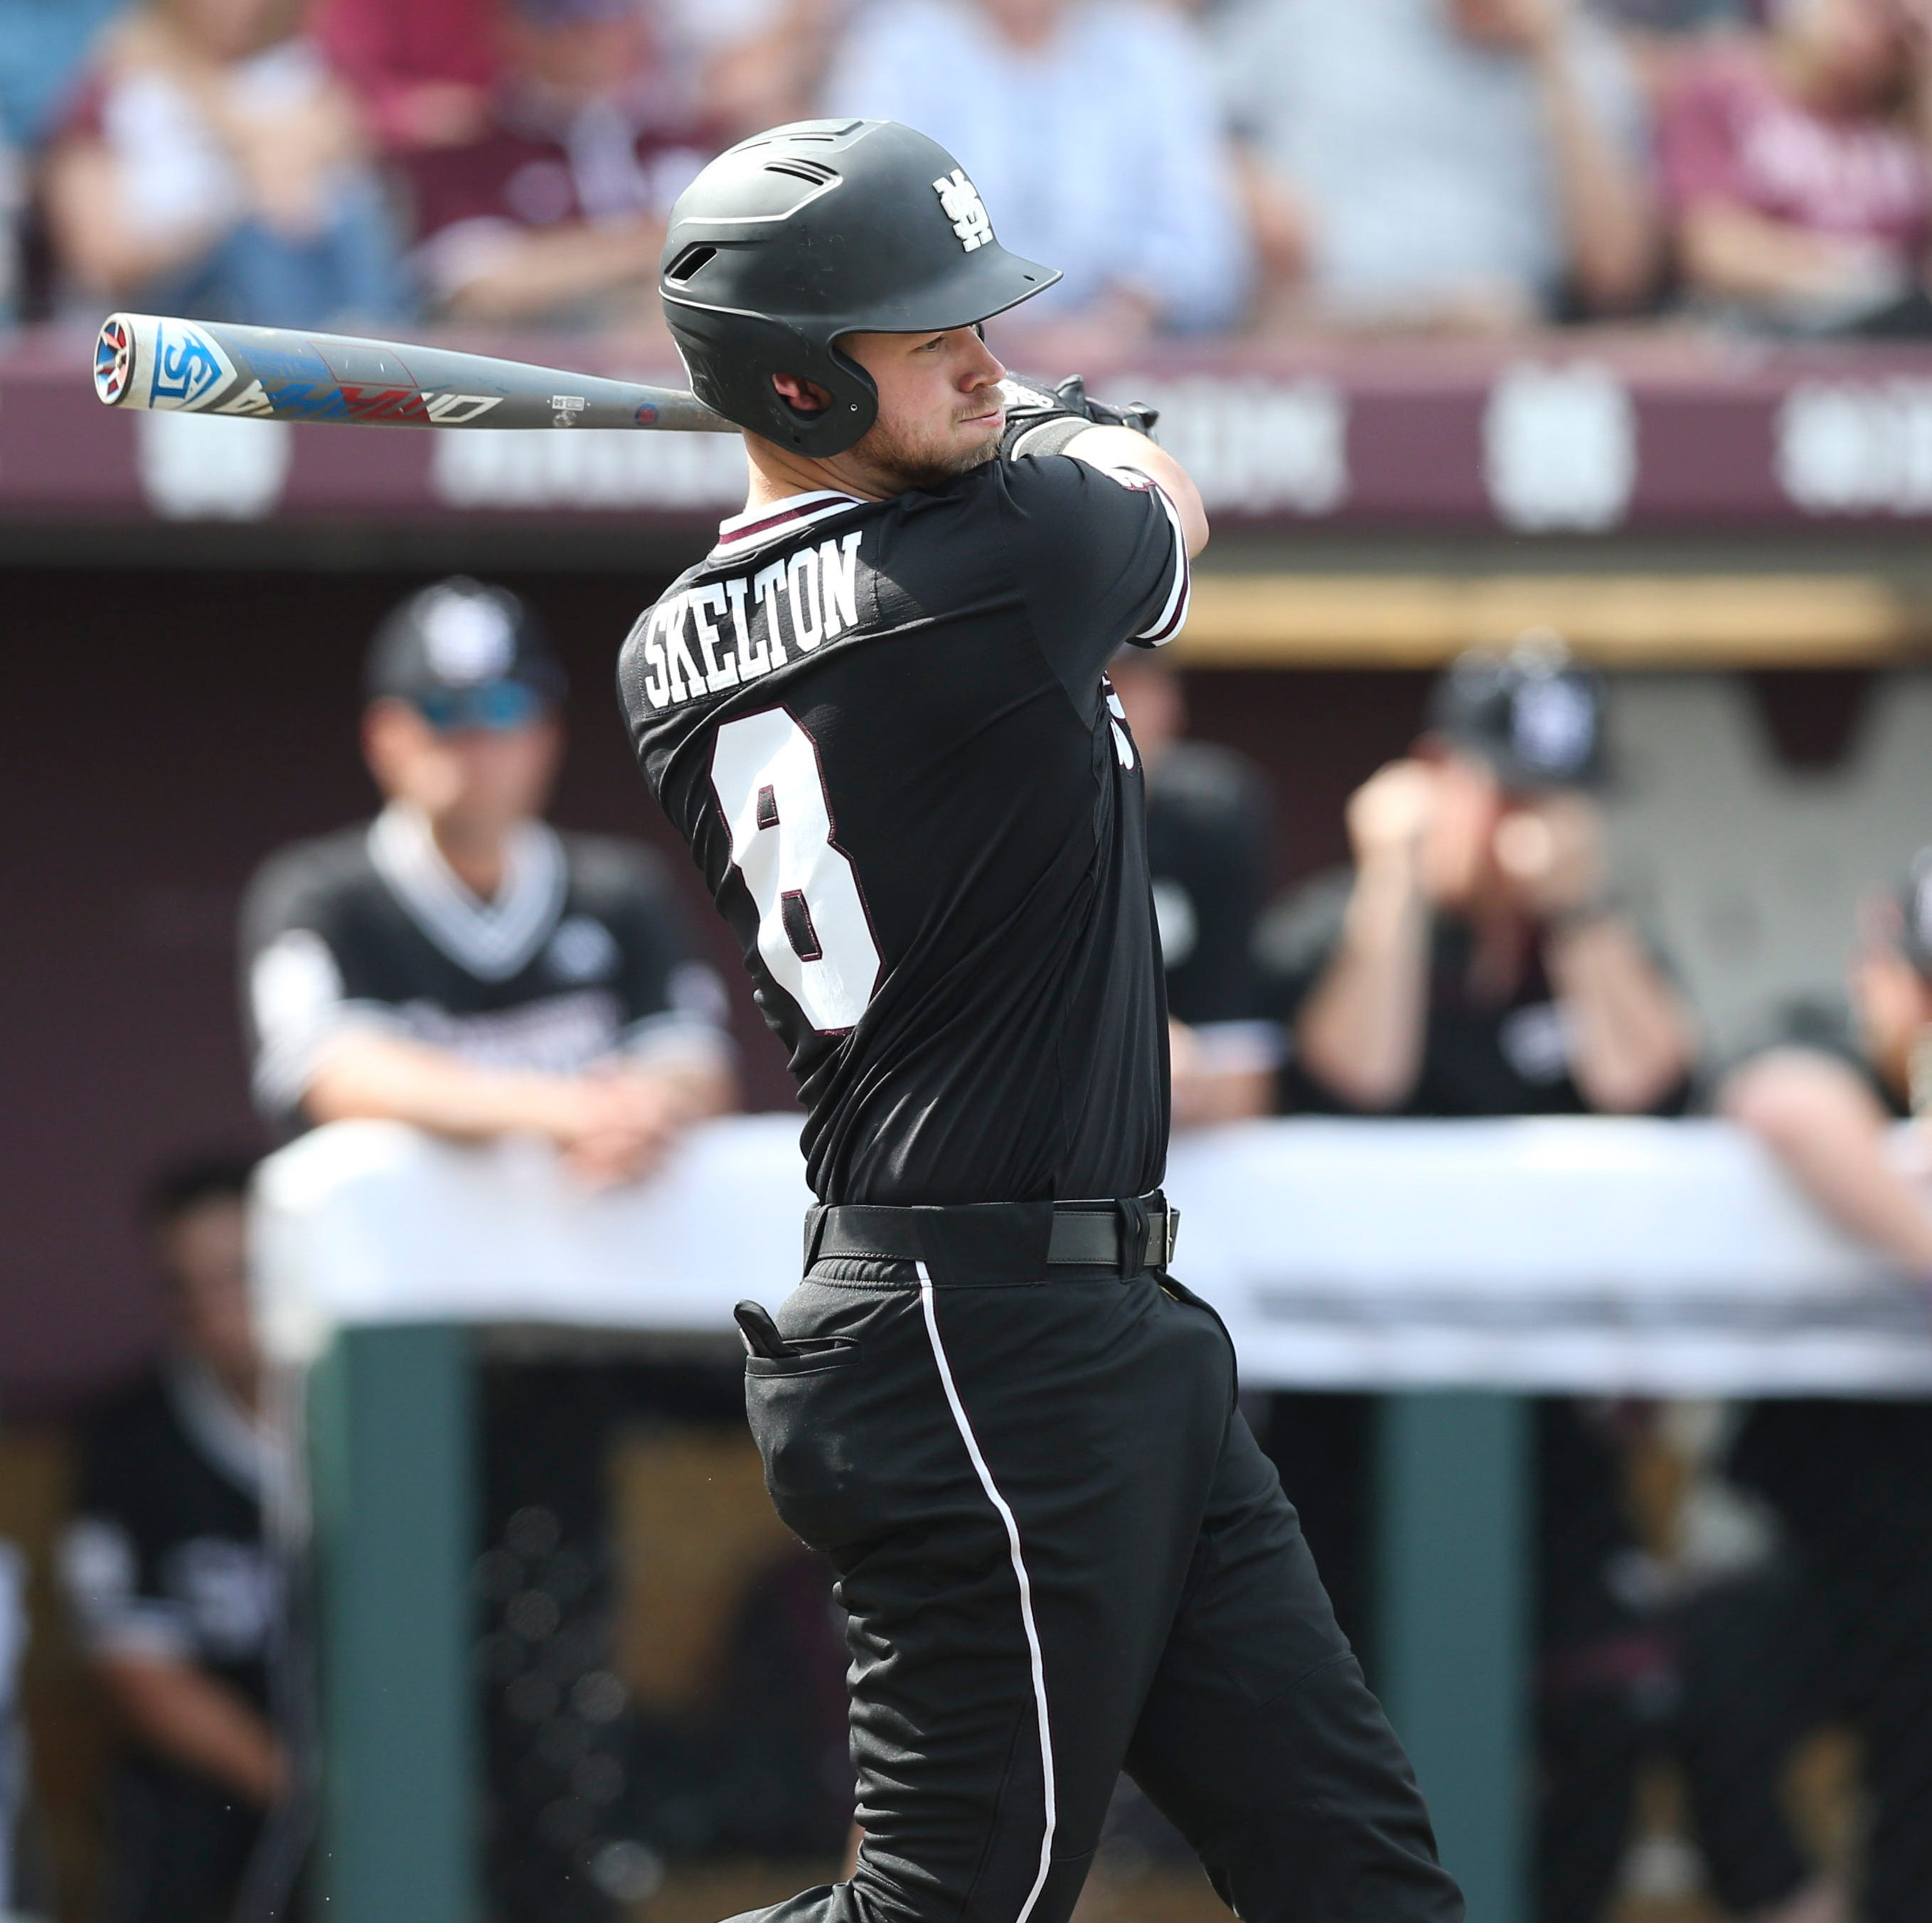 Bulldogs break out brooms: Mississippi State baseball secures SEC series sweep of Ole Miss